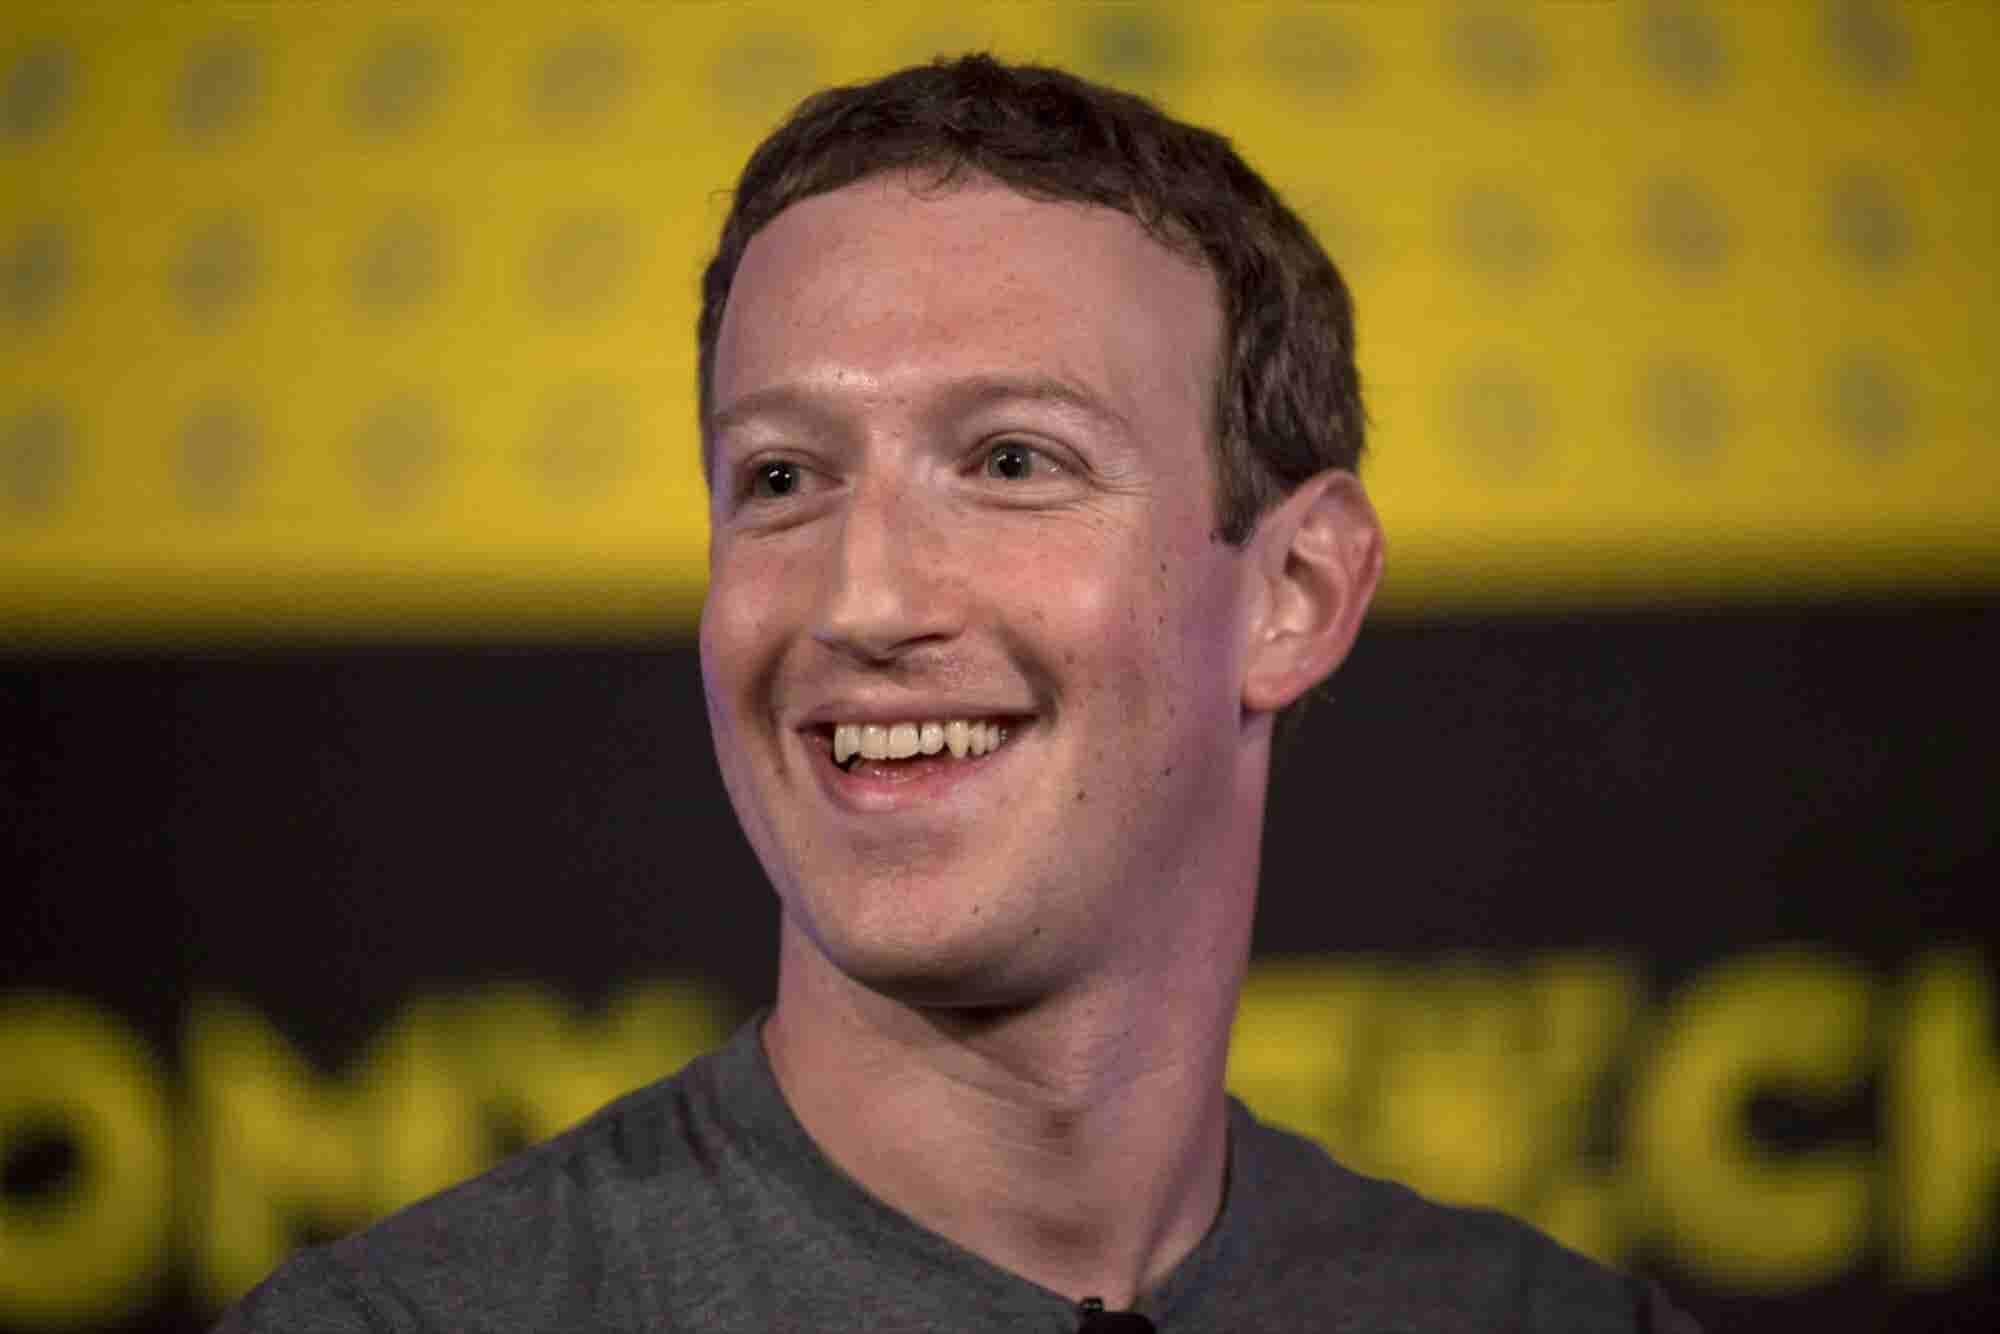 How to Create a Polished CEO Presence Worthy of Mark Zuckerberg Without Hiring a Staff